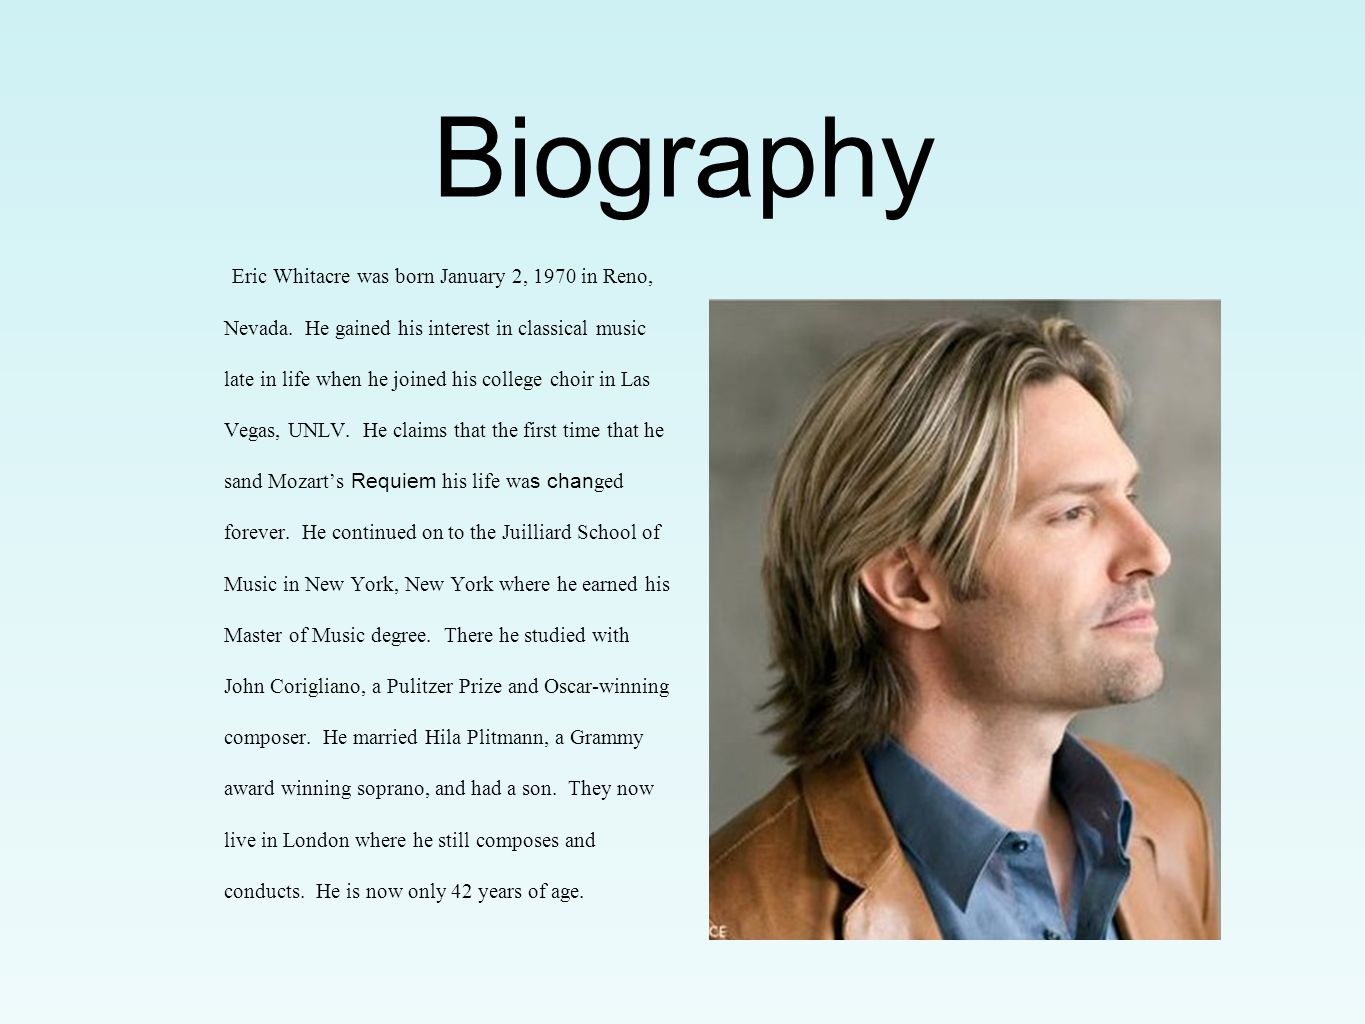 Biography Eric Whitacre was born January 2, 1970 in Reno, Nevada. He gained his interest in classical music late in life when he joined his college ch